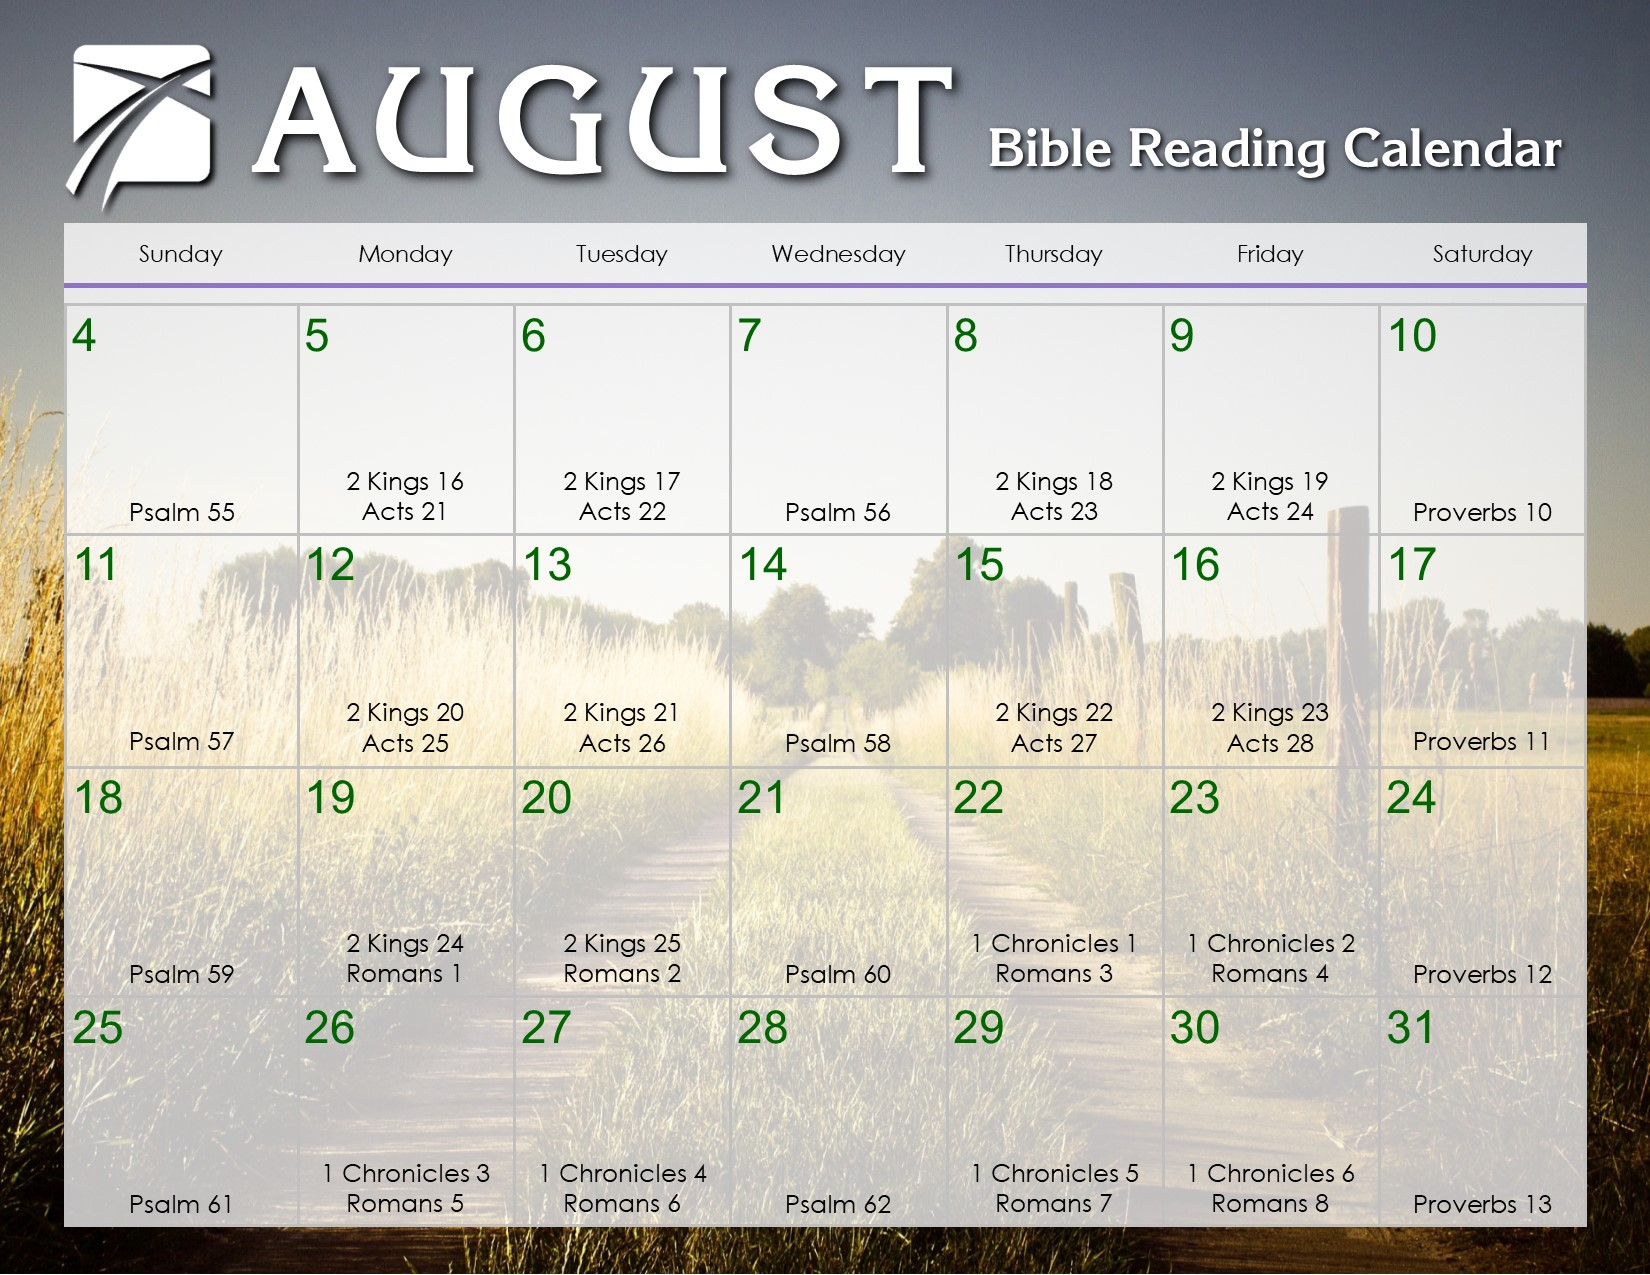 August 2019 Daily Bible Reading Calendar – In God's Image